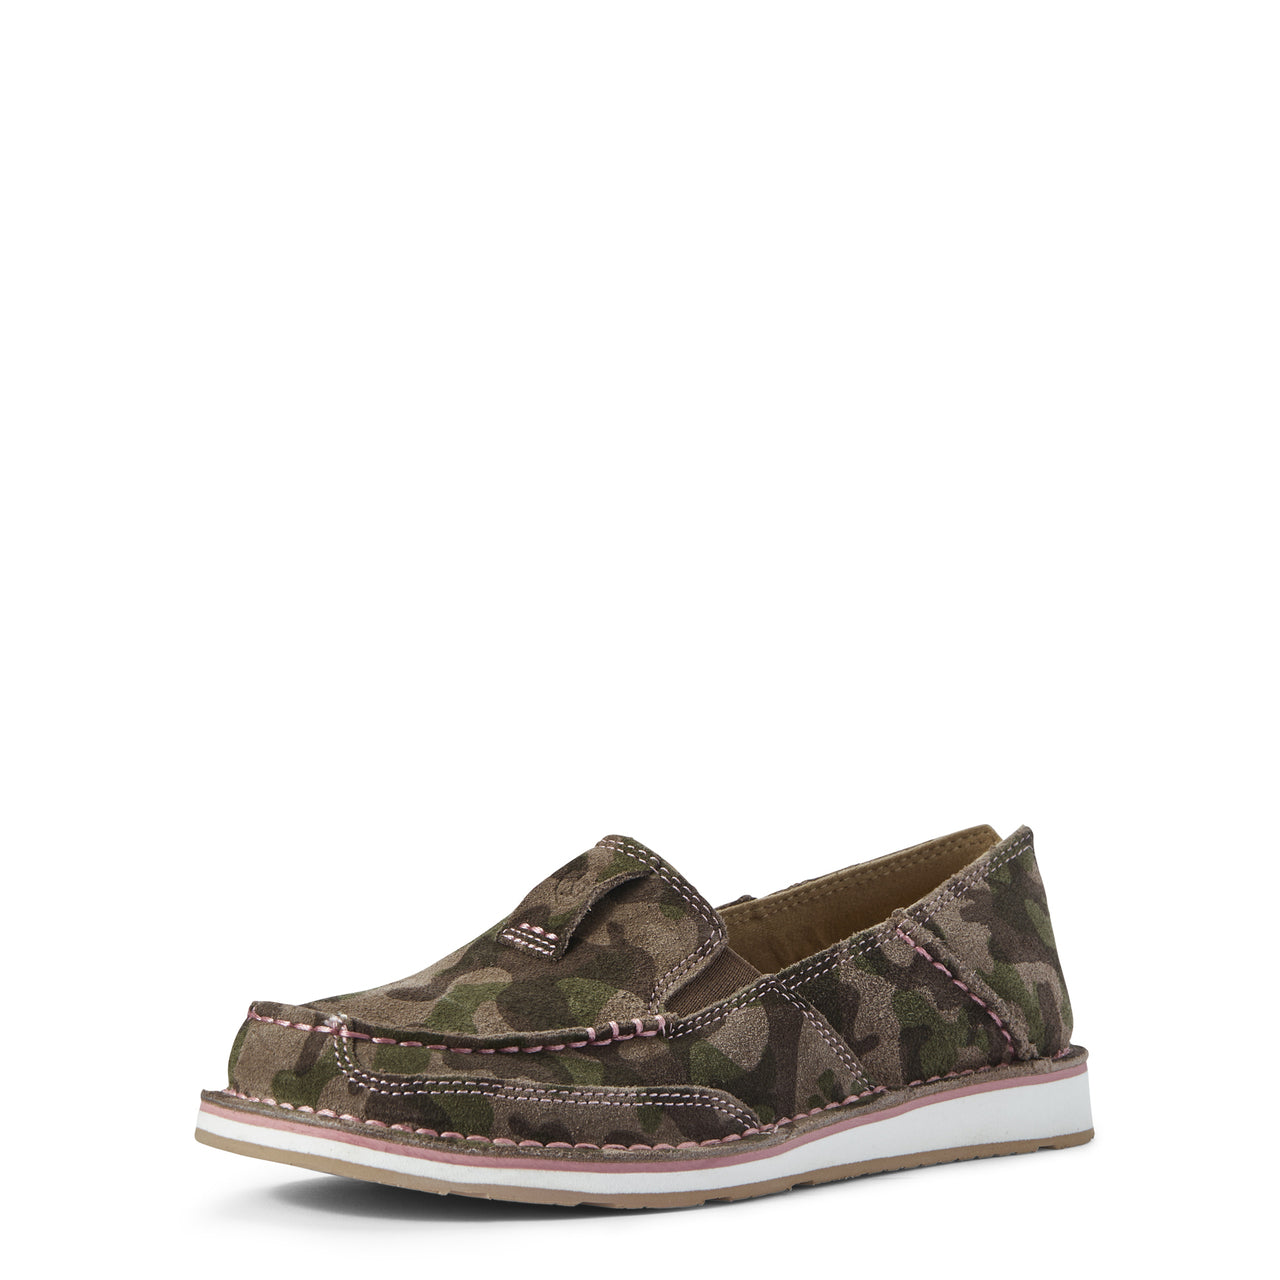 Ariat Cruiser Camo Suede Women's Casual Shoe